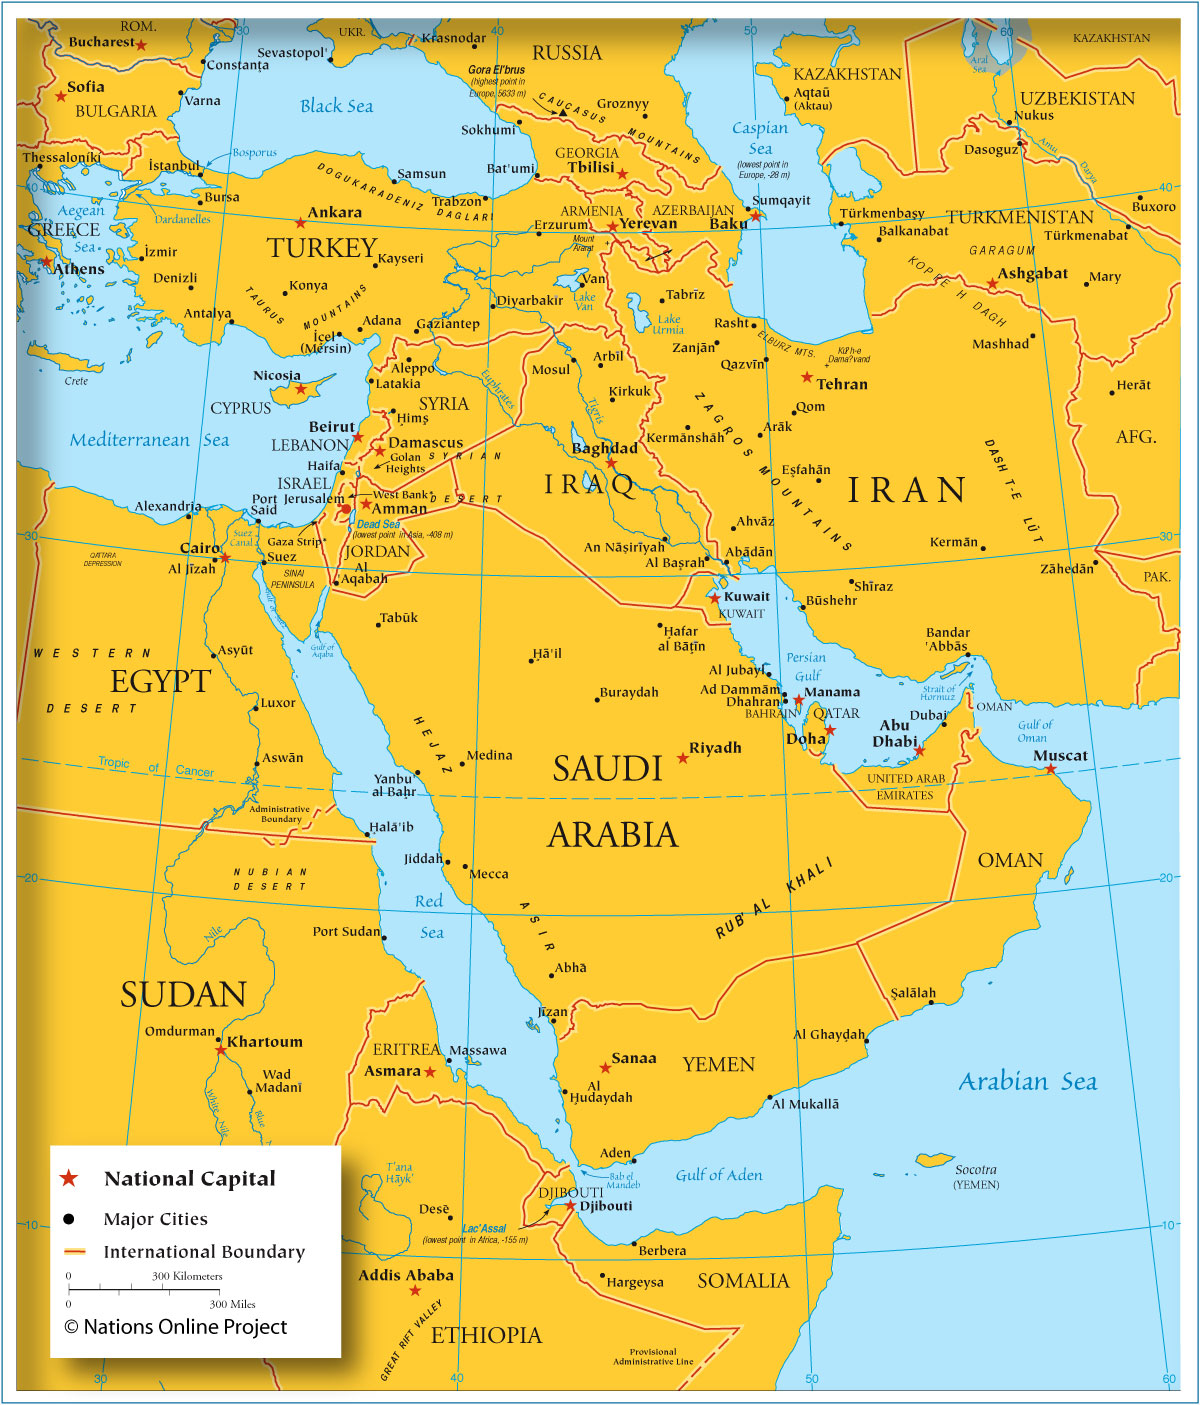 Map showing the countries of western asia and the middle east and